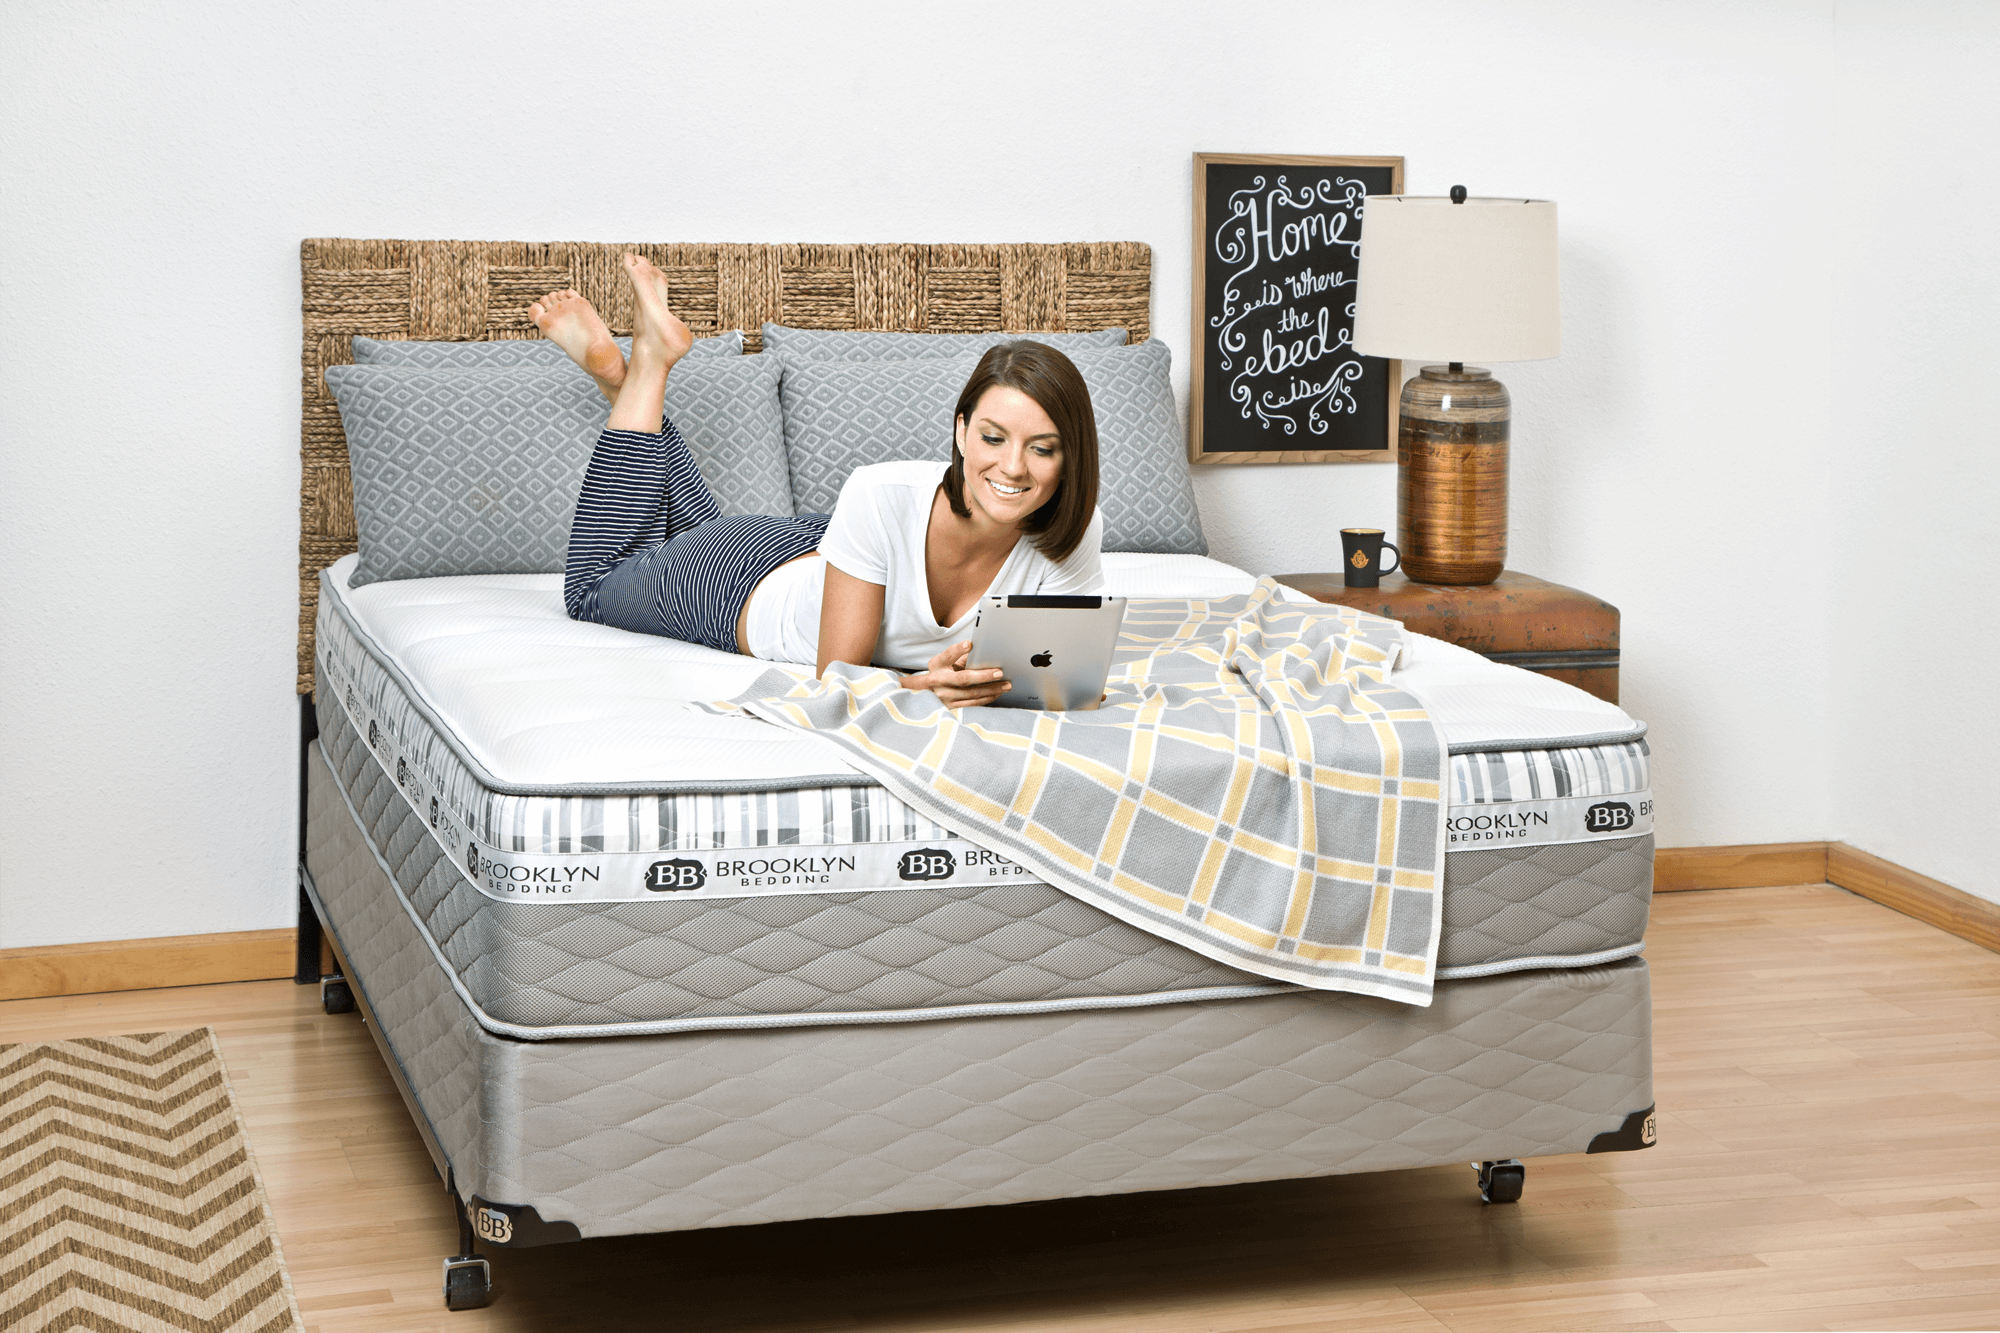 Brooklyn bed mattress review get best mattress for Brooklyn bedding vs tempurpedic